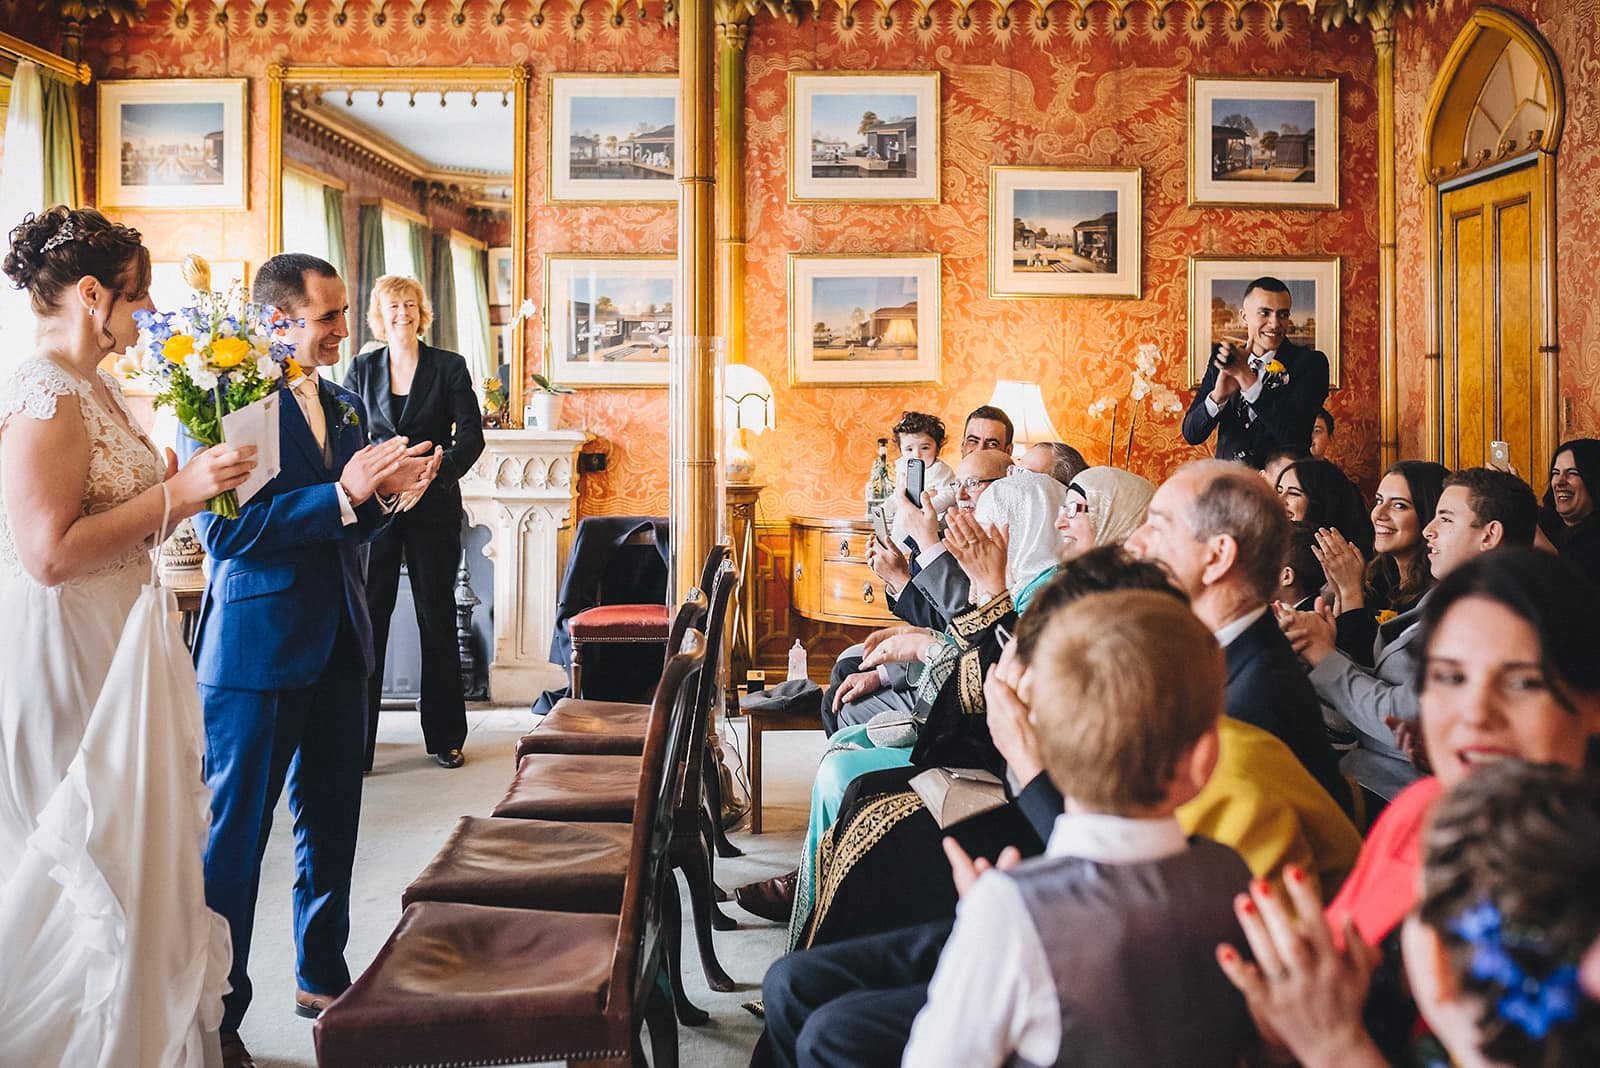 Bride and groom greet their guests at their Micro Wedding Ceremony at the Royal Pavilion Brighton